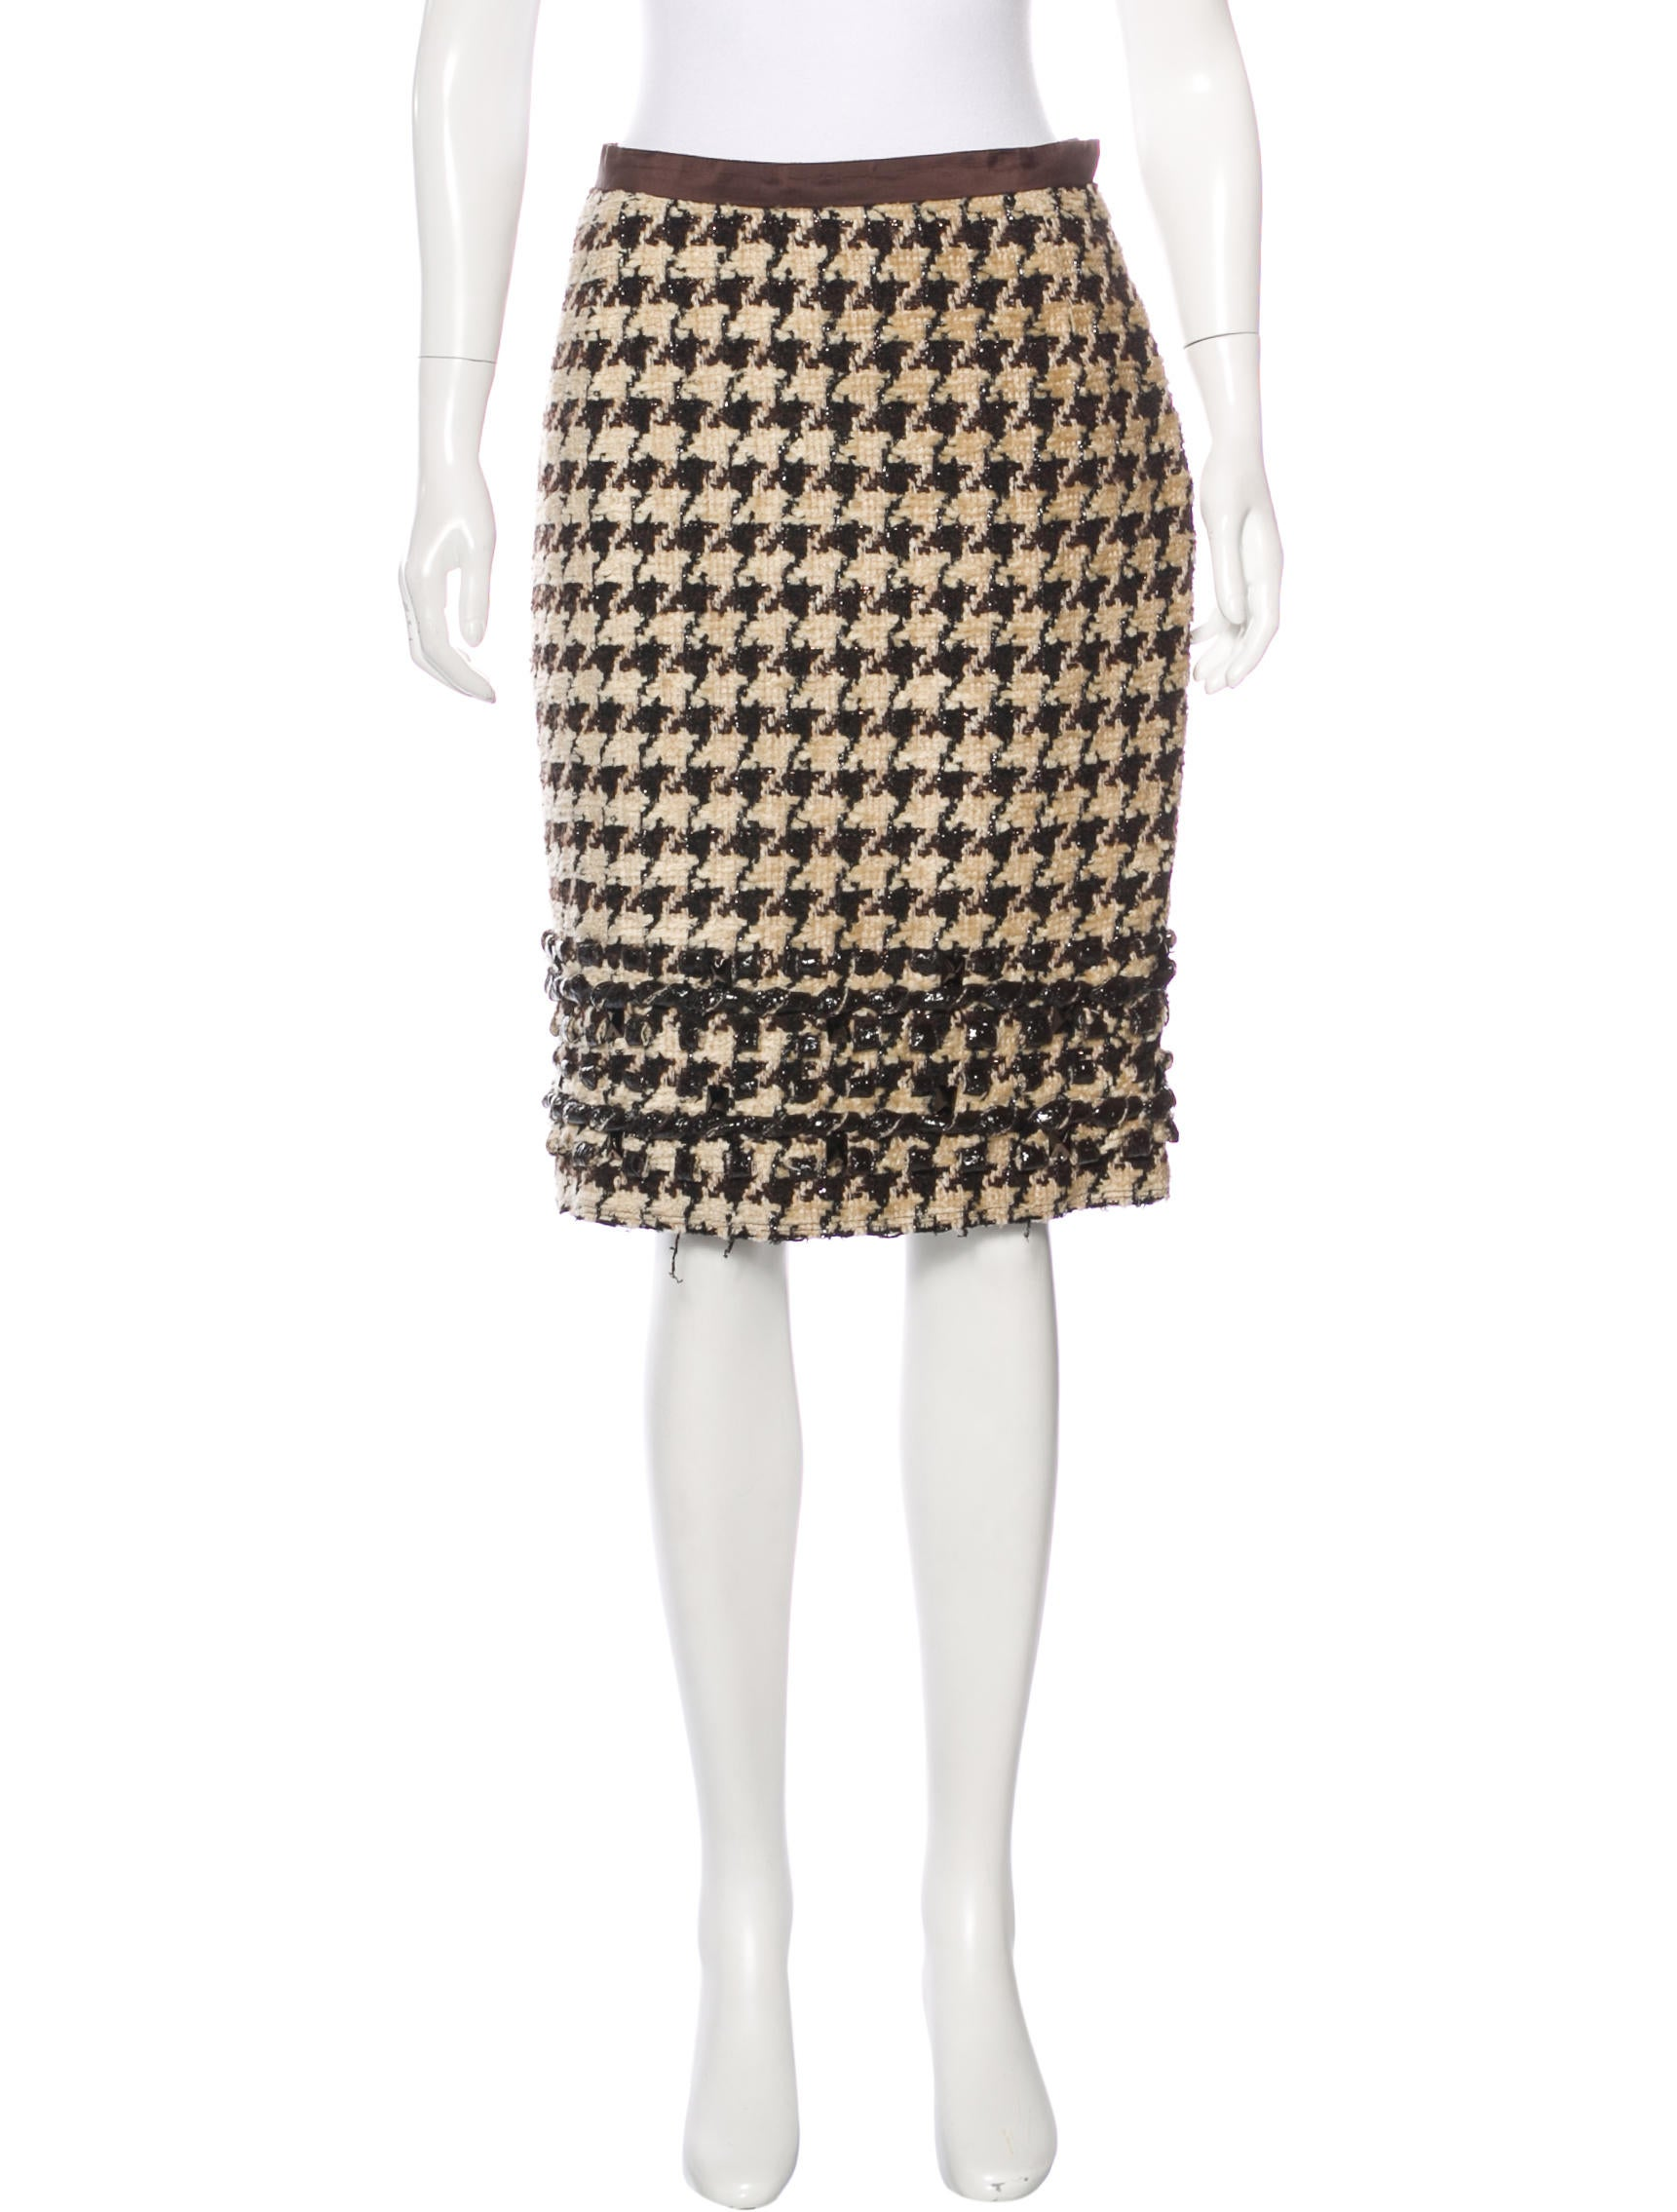 Slinky Brand Houndstooth Print Textured Pencil Skirt For quick and easy solutions to your everyday fashion needs, look no further than Slinky. Enjoy a variety of stylish dresses and practical coordinates that mix and match to create incredible ensembles that are comfortable, easy-to .